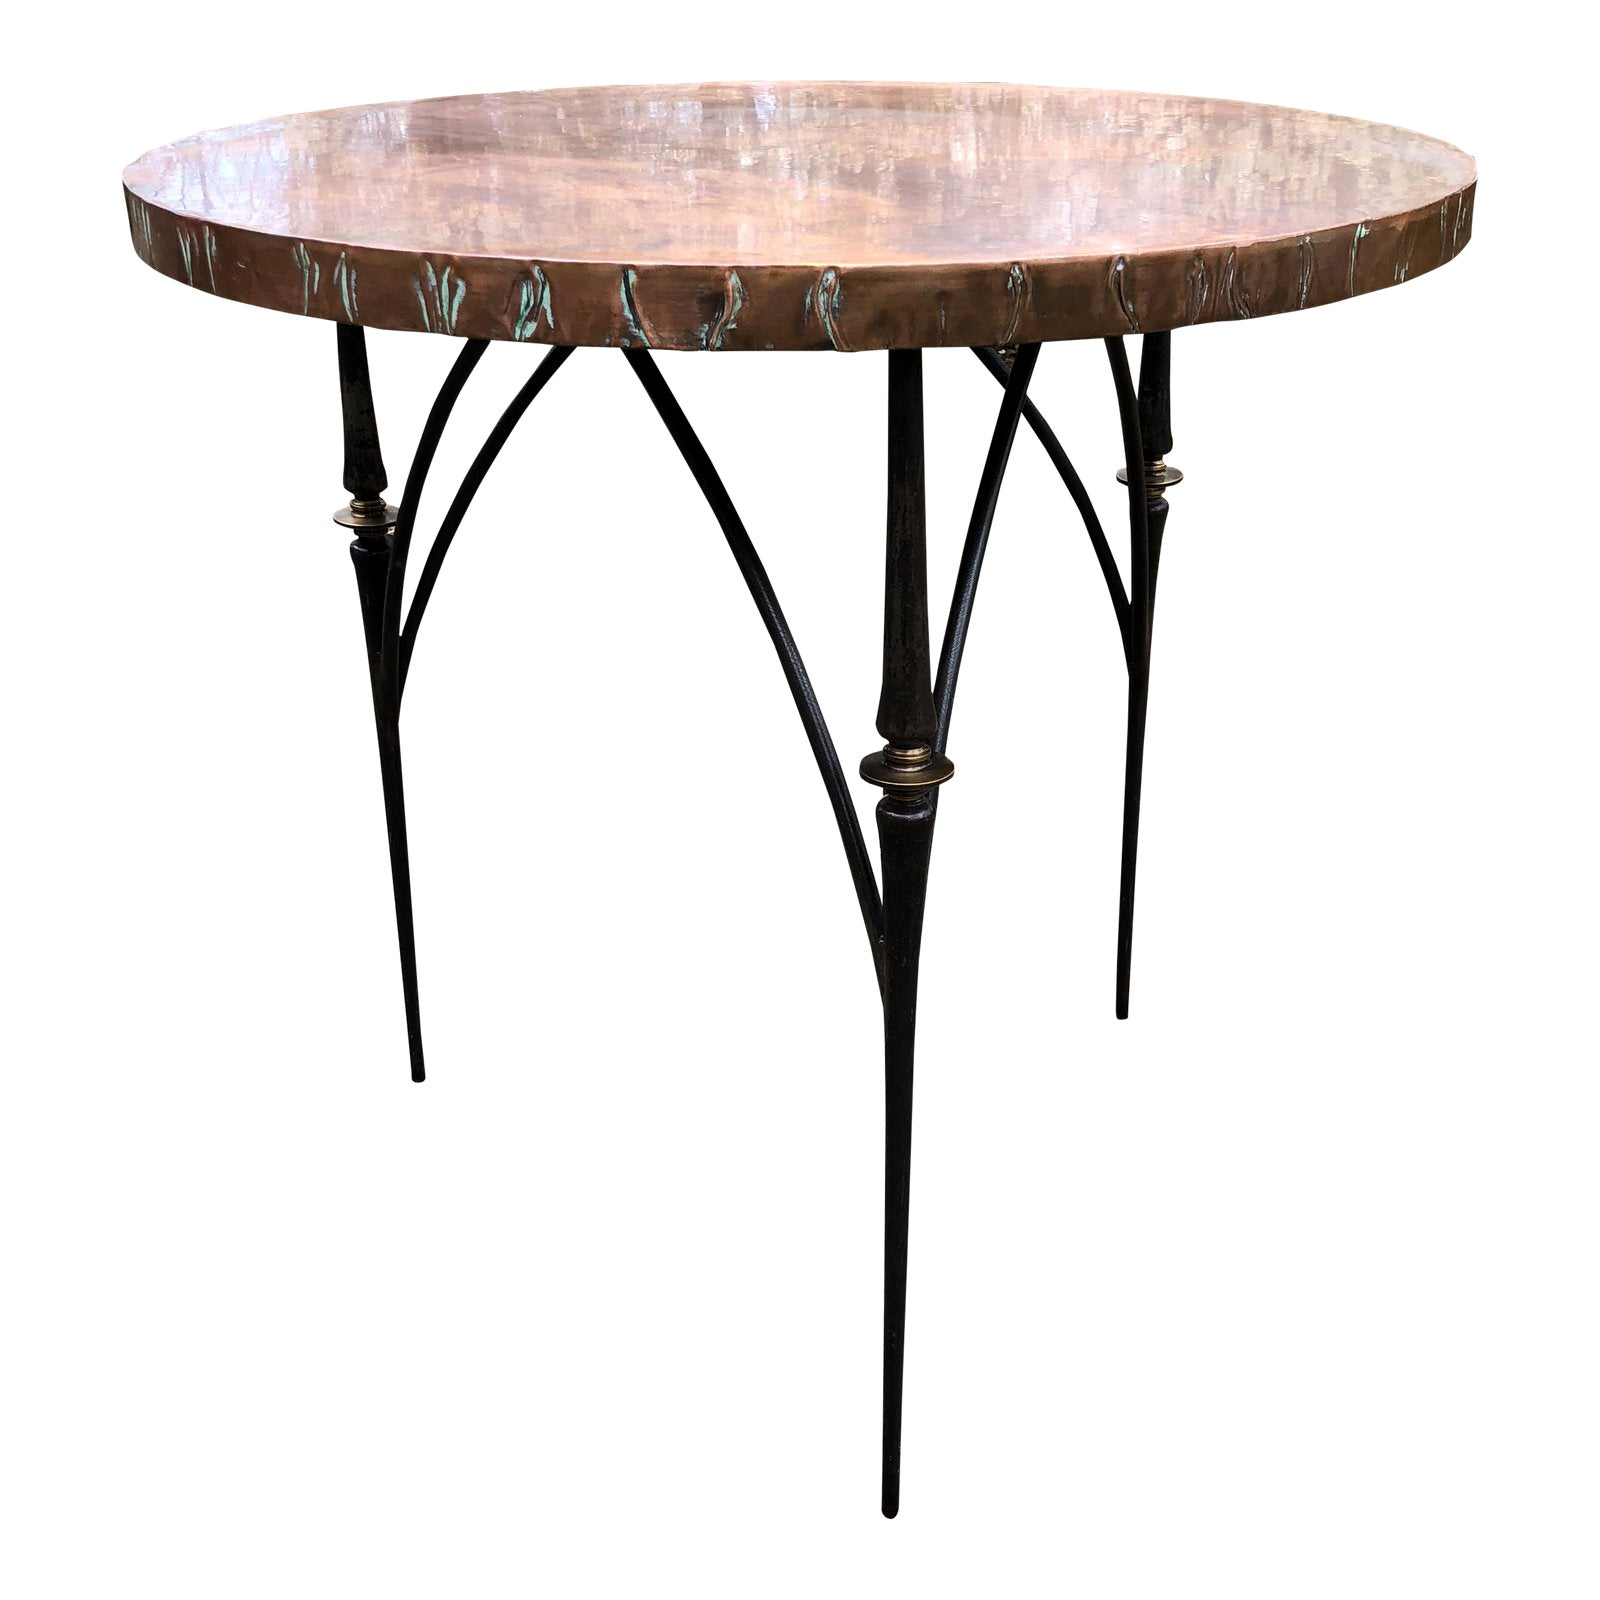 Contemporary Round Copper Center Dining Table